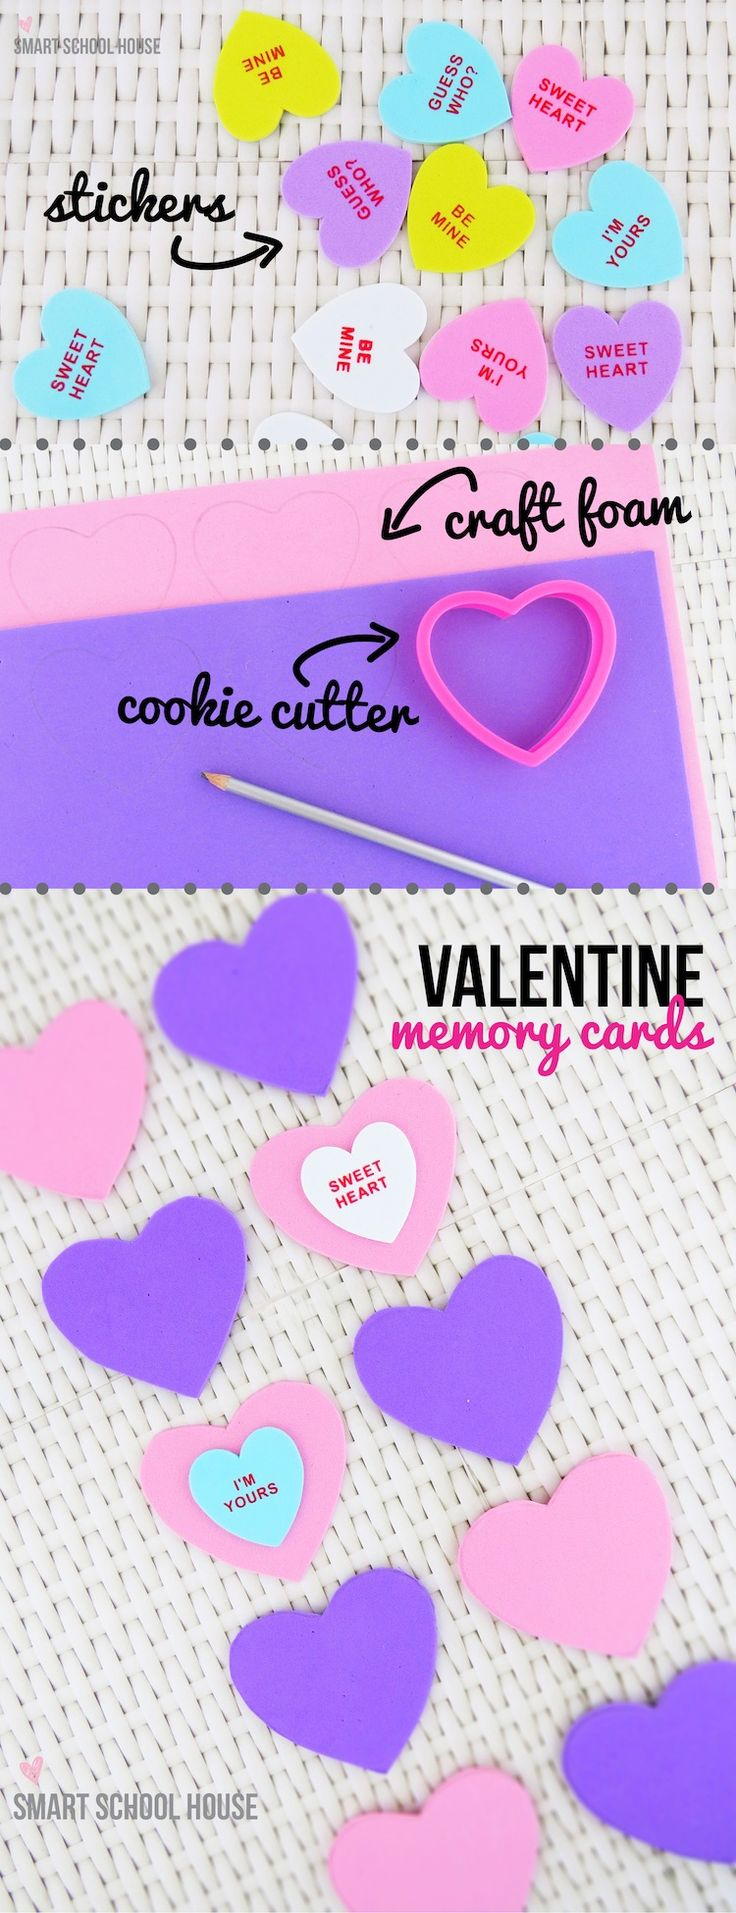 Memory foam for crafts - This Diy Valentine Memory Cards Tutorial Combines An Adorable Craft With A Little Learning